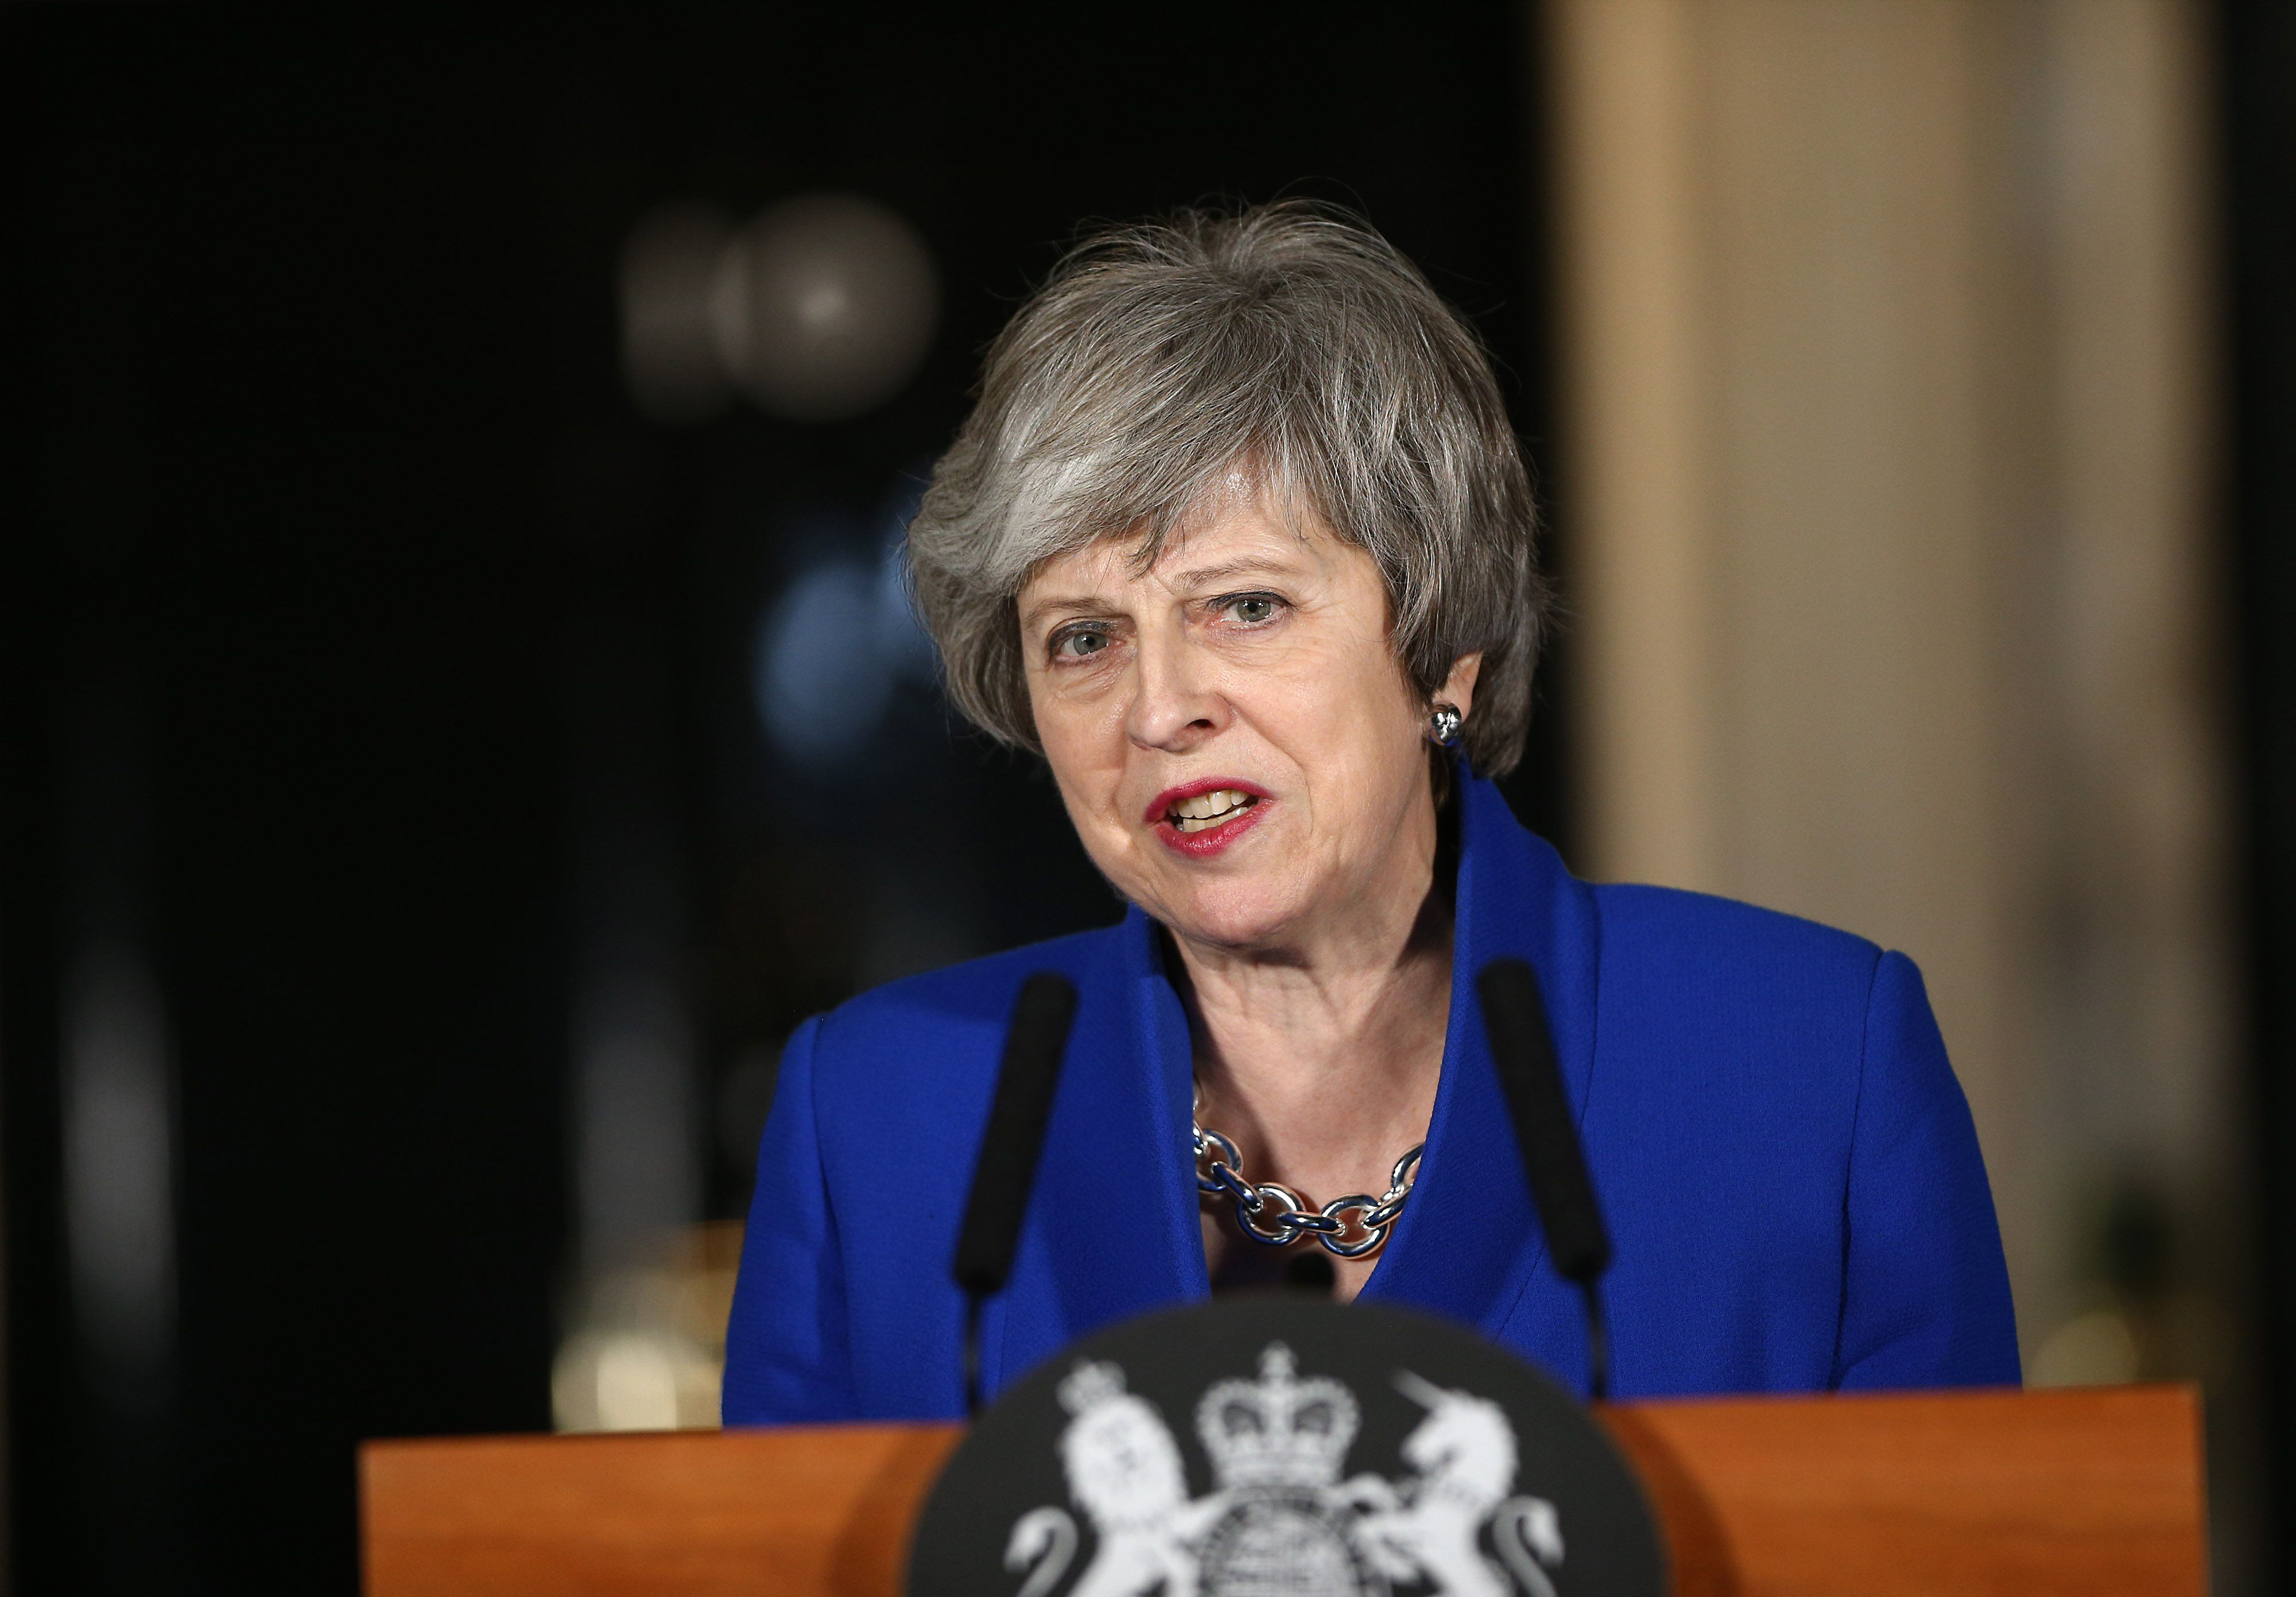 Second Brexit Referendum Impossible In Next 12 Months, Government Document